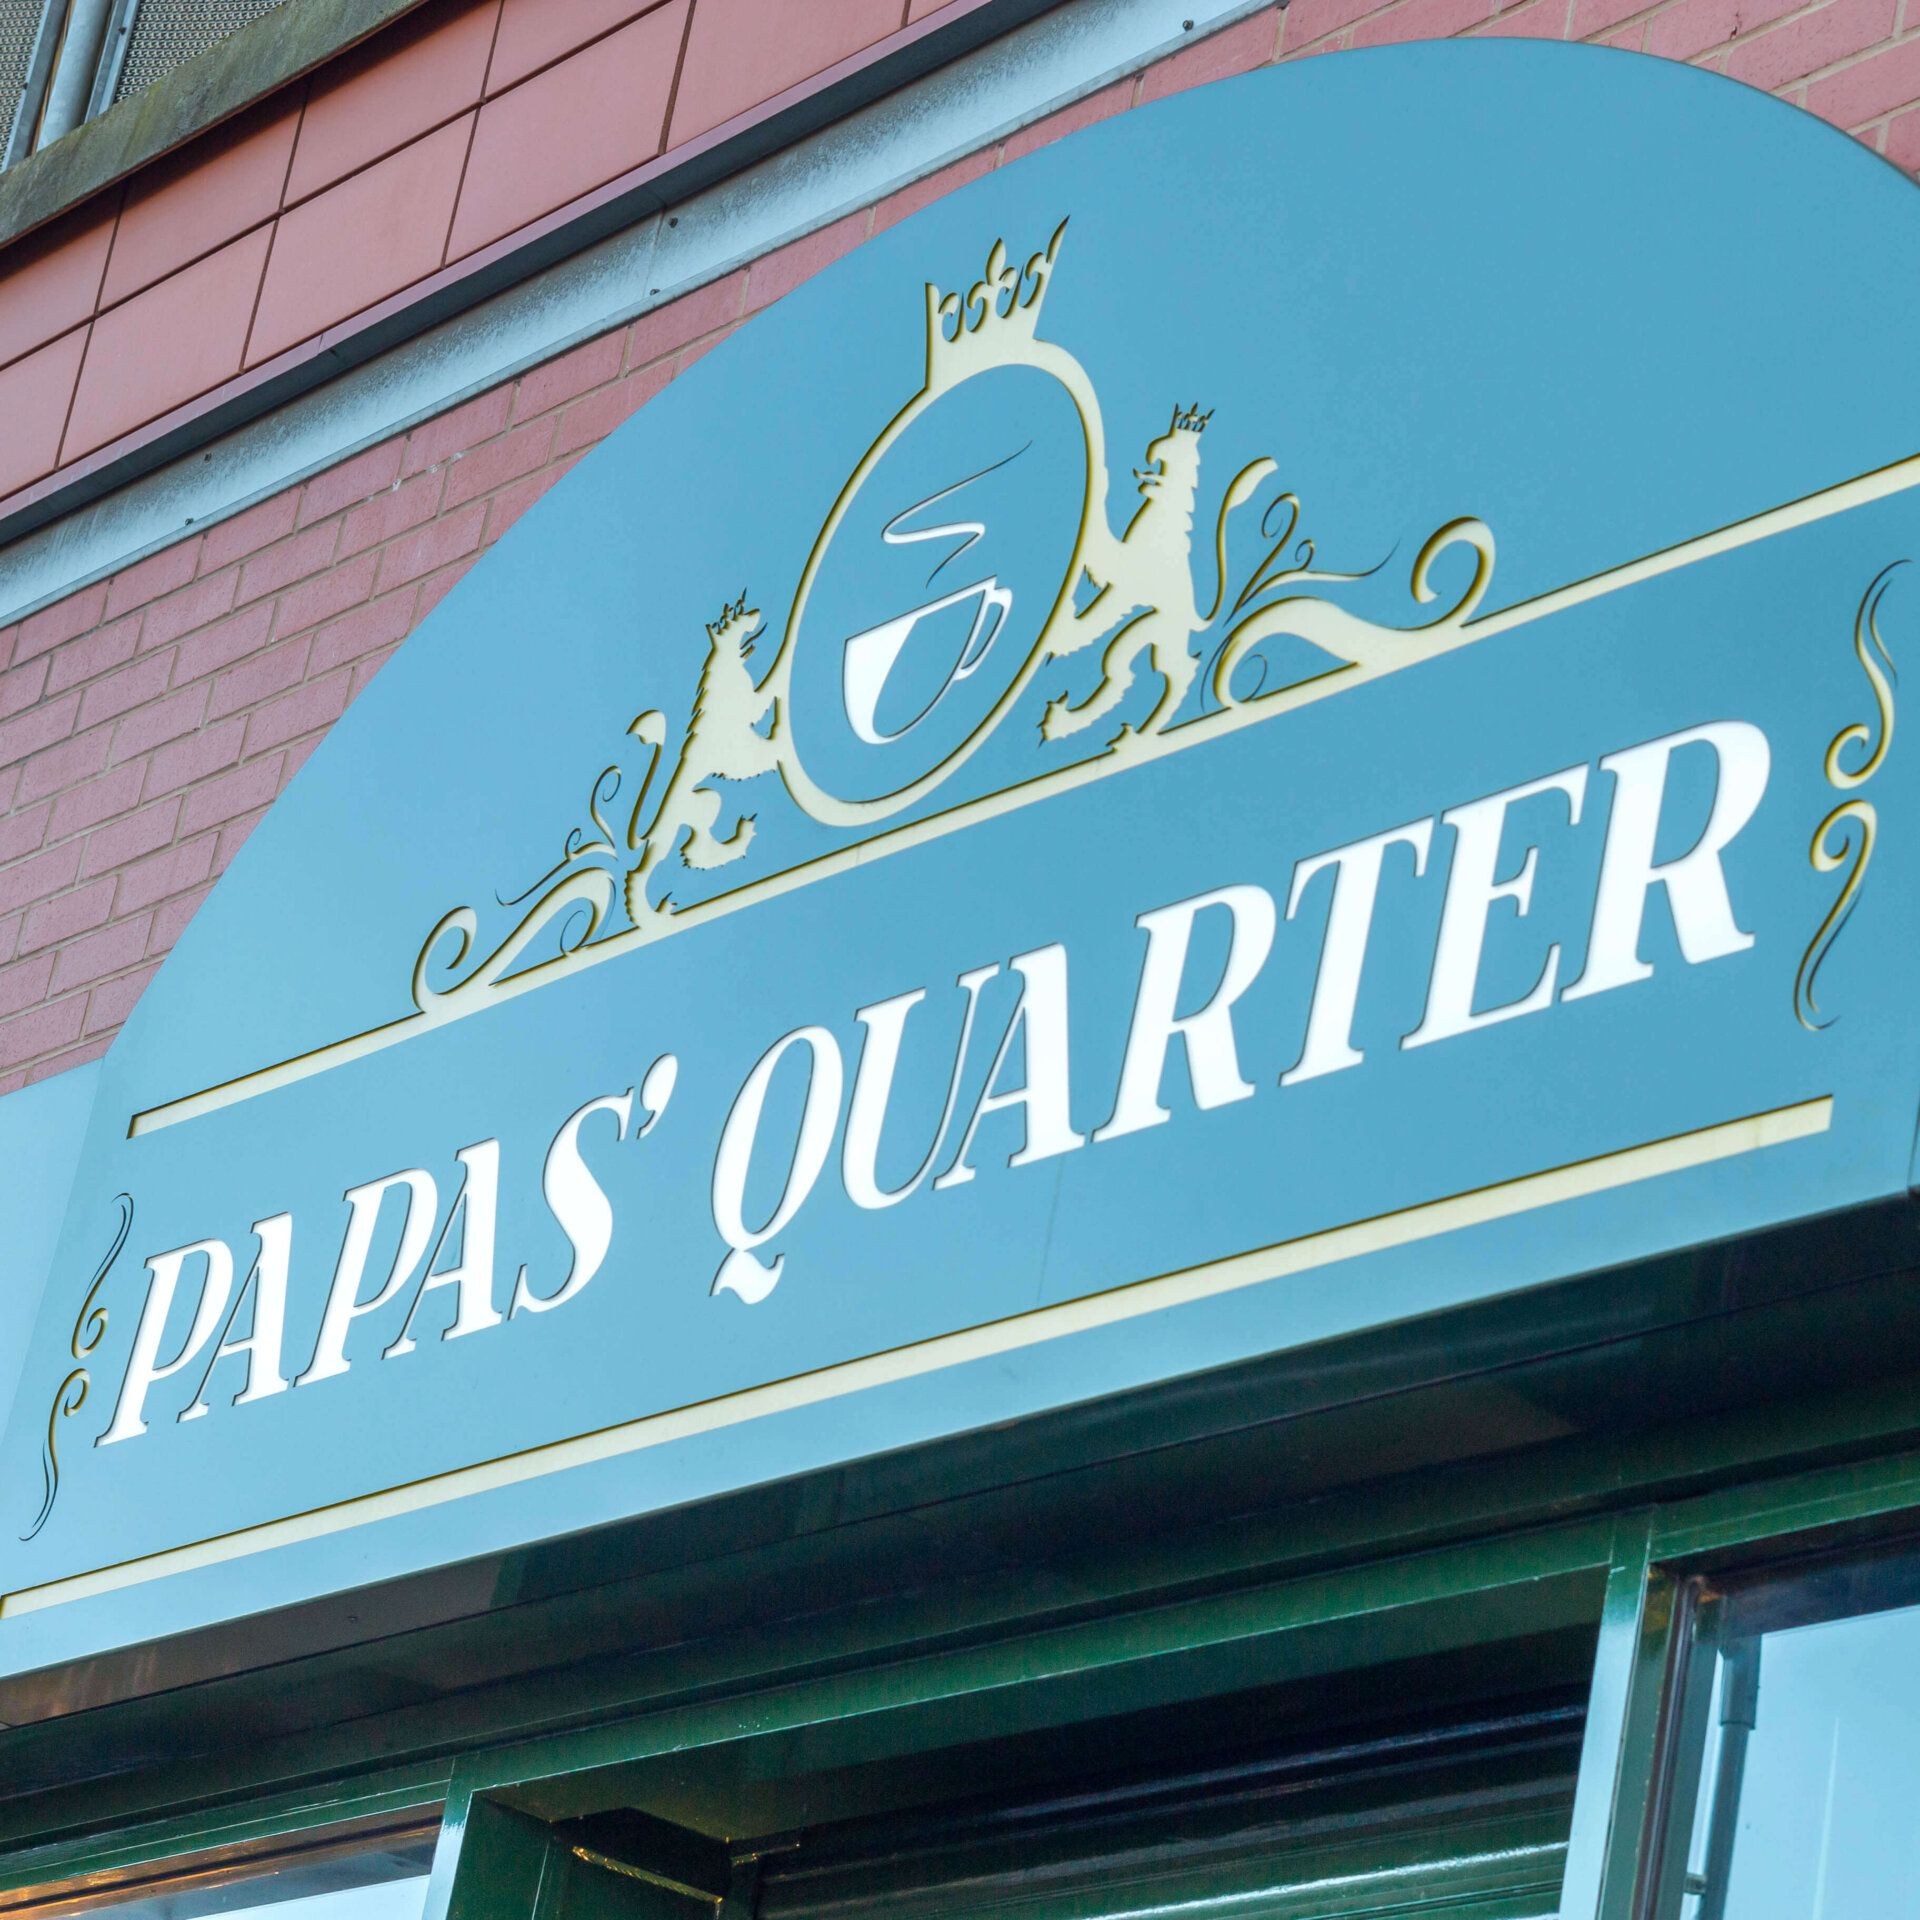 Papas Quarter